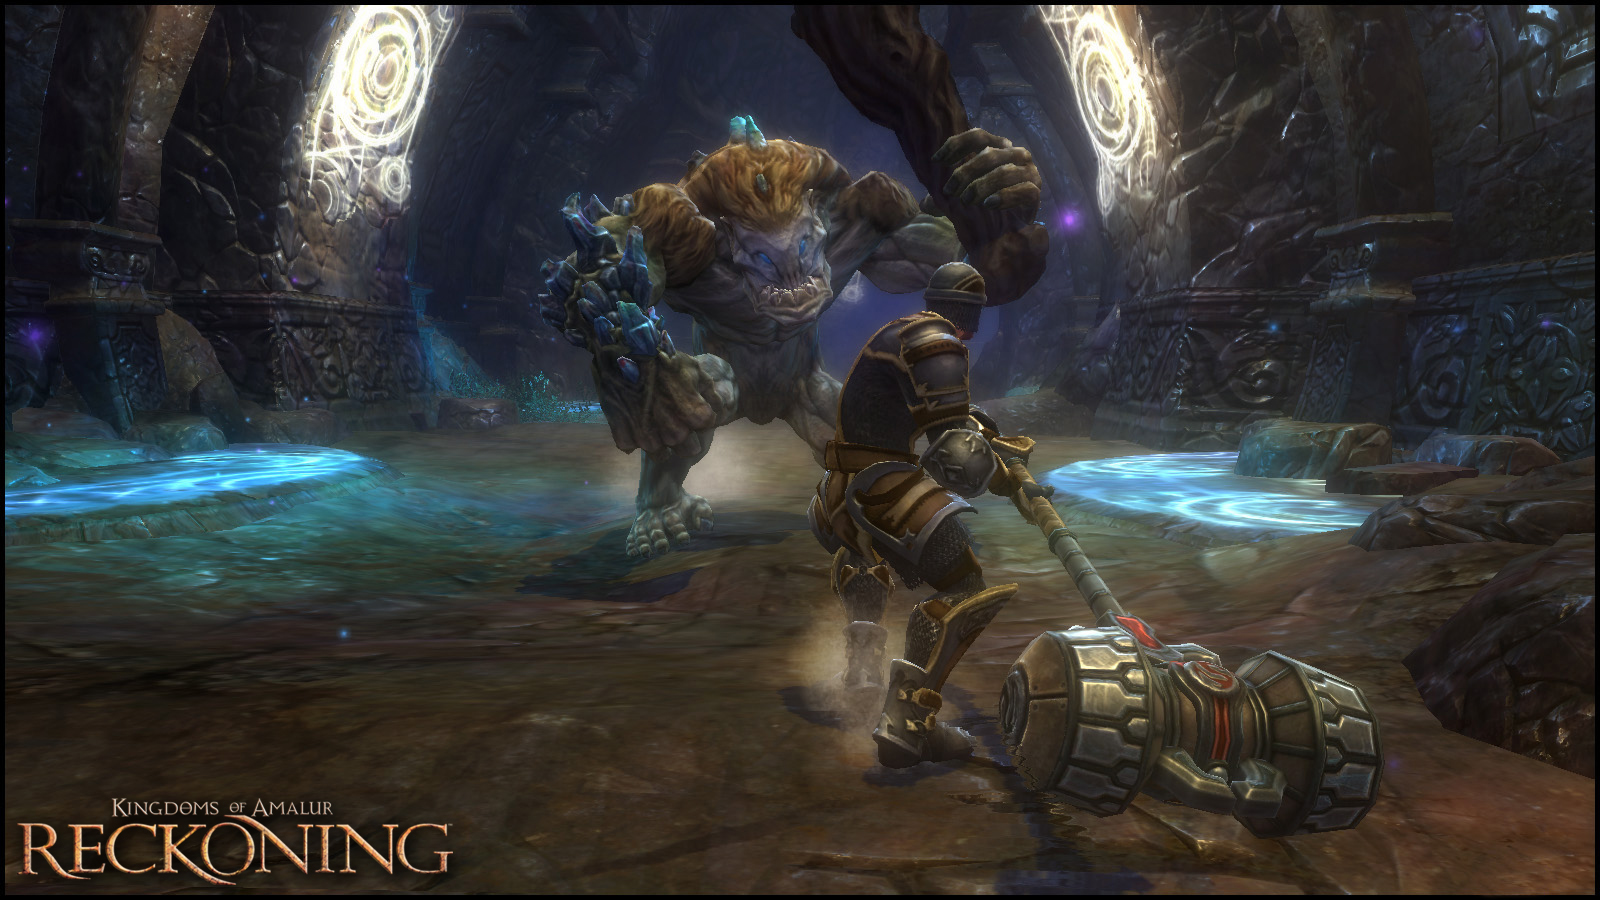 Nuevo vídeo gameplay de Kingdoms of Amalur: Reckoning [Action-RPG]